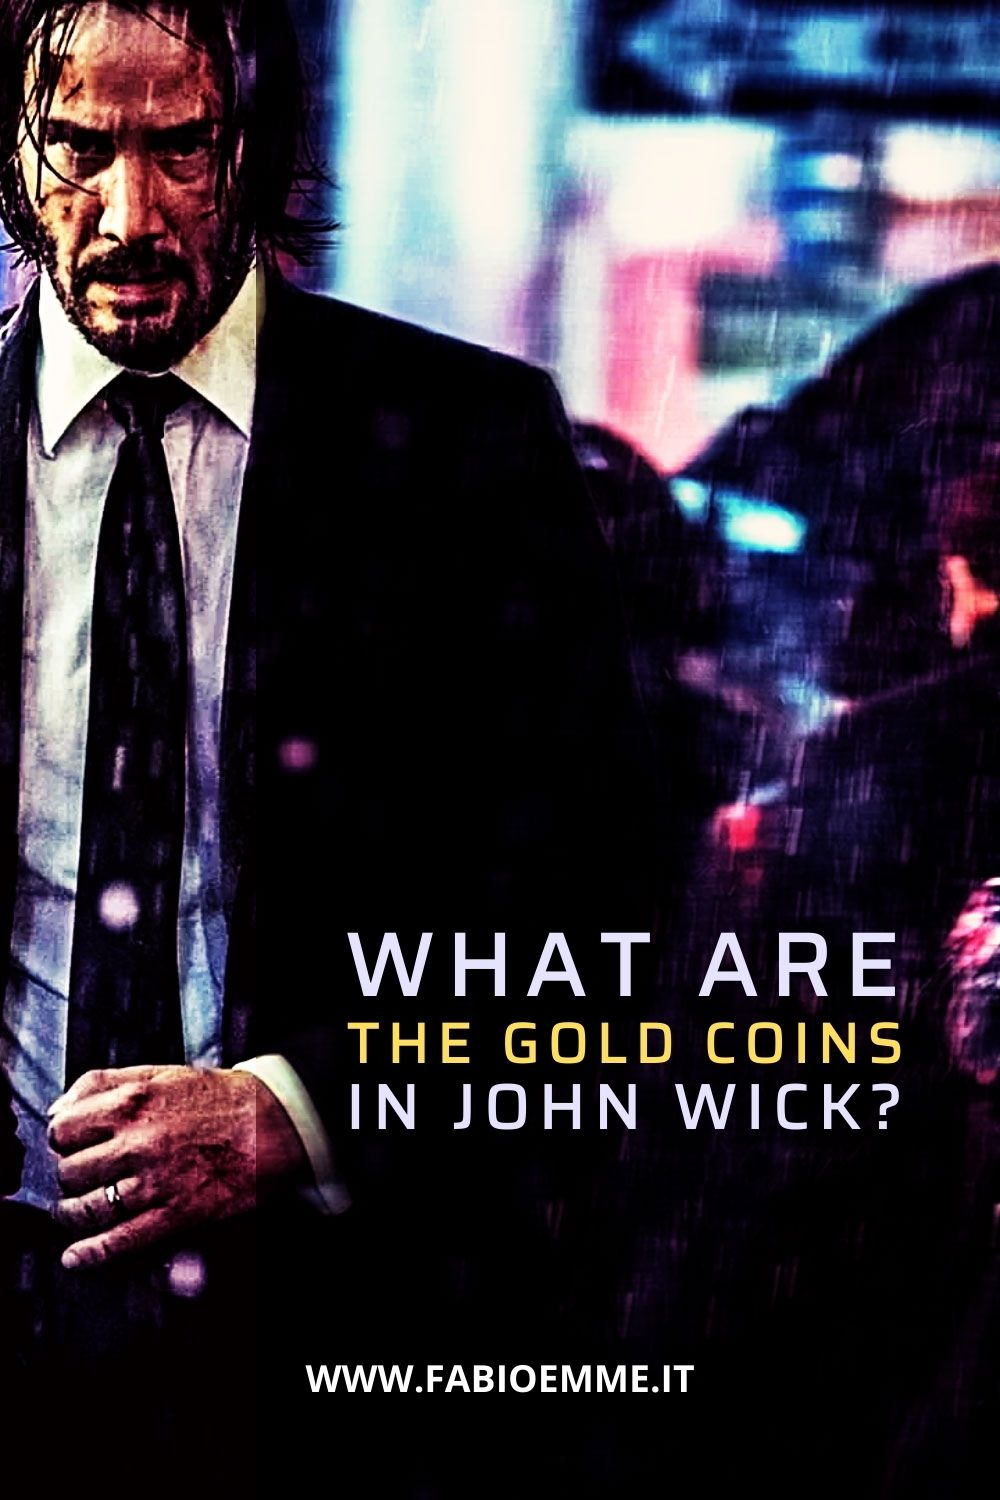 Inside the world of Keanu Reeves's John Wick movies, we often see the characters exchange gold coins… but what exactly are they?